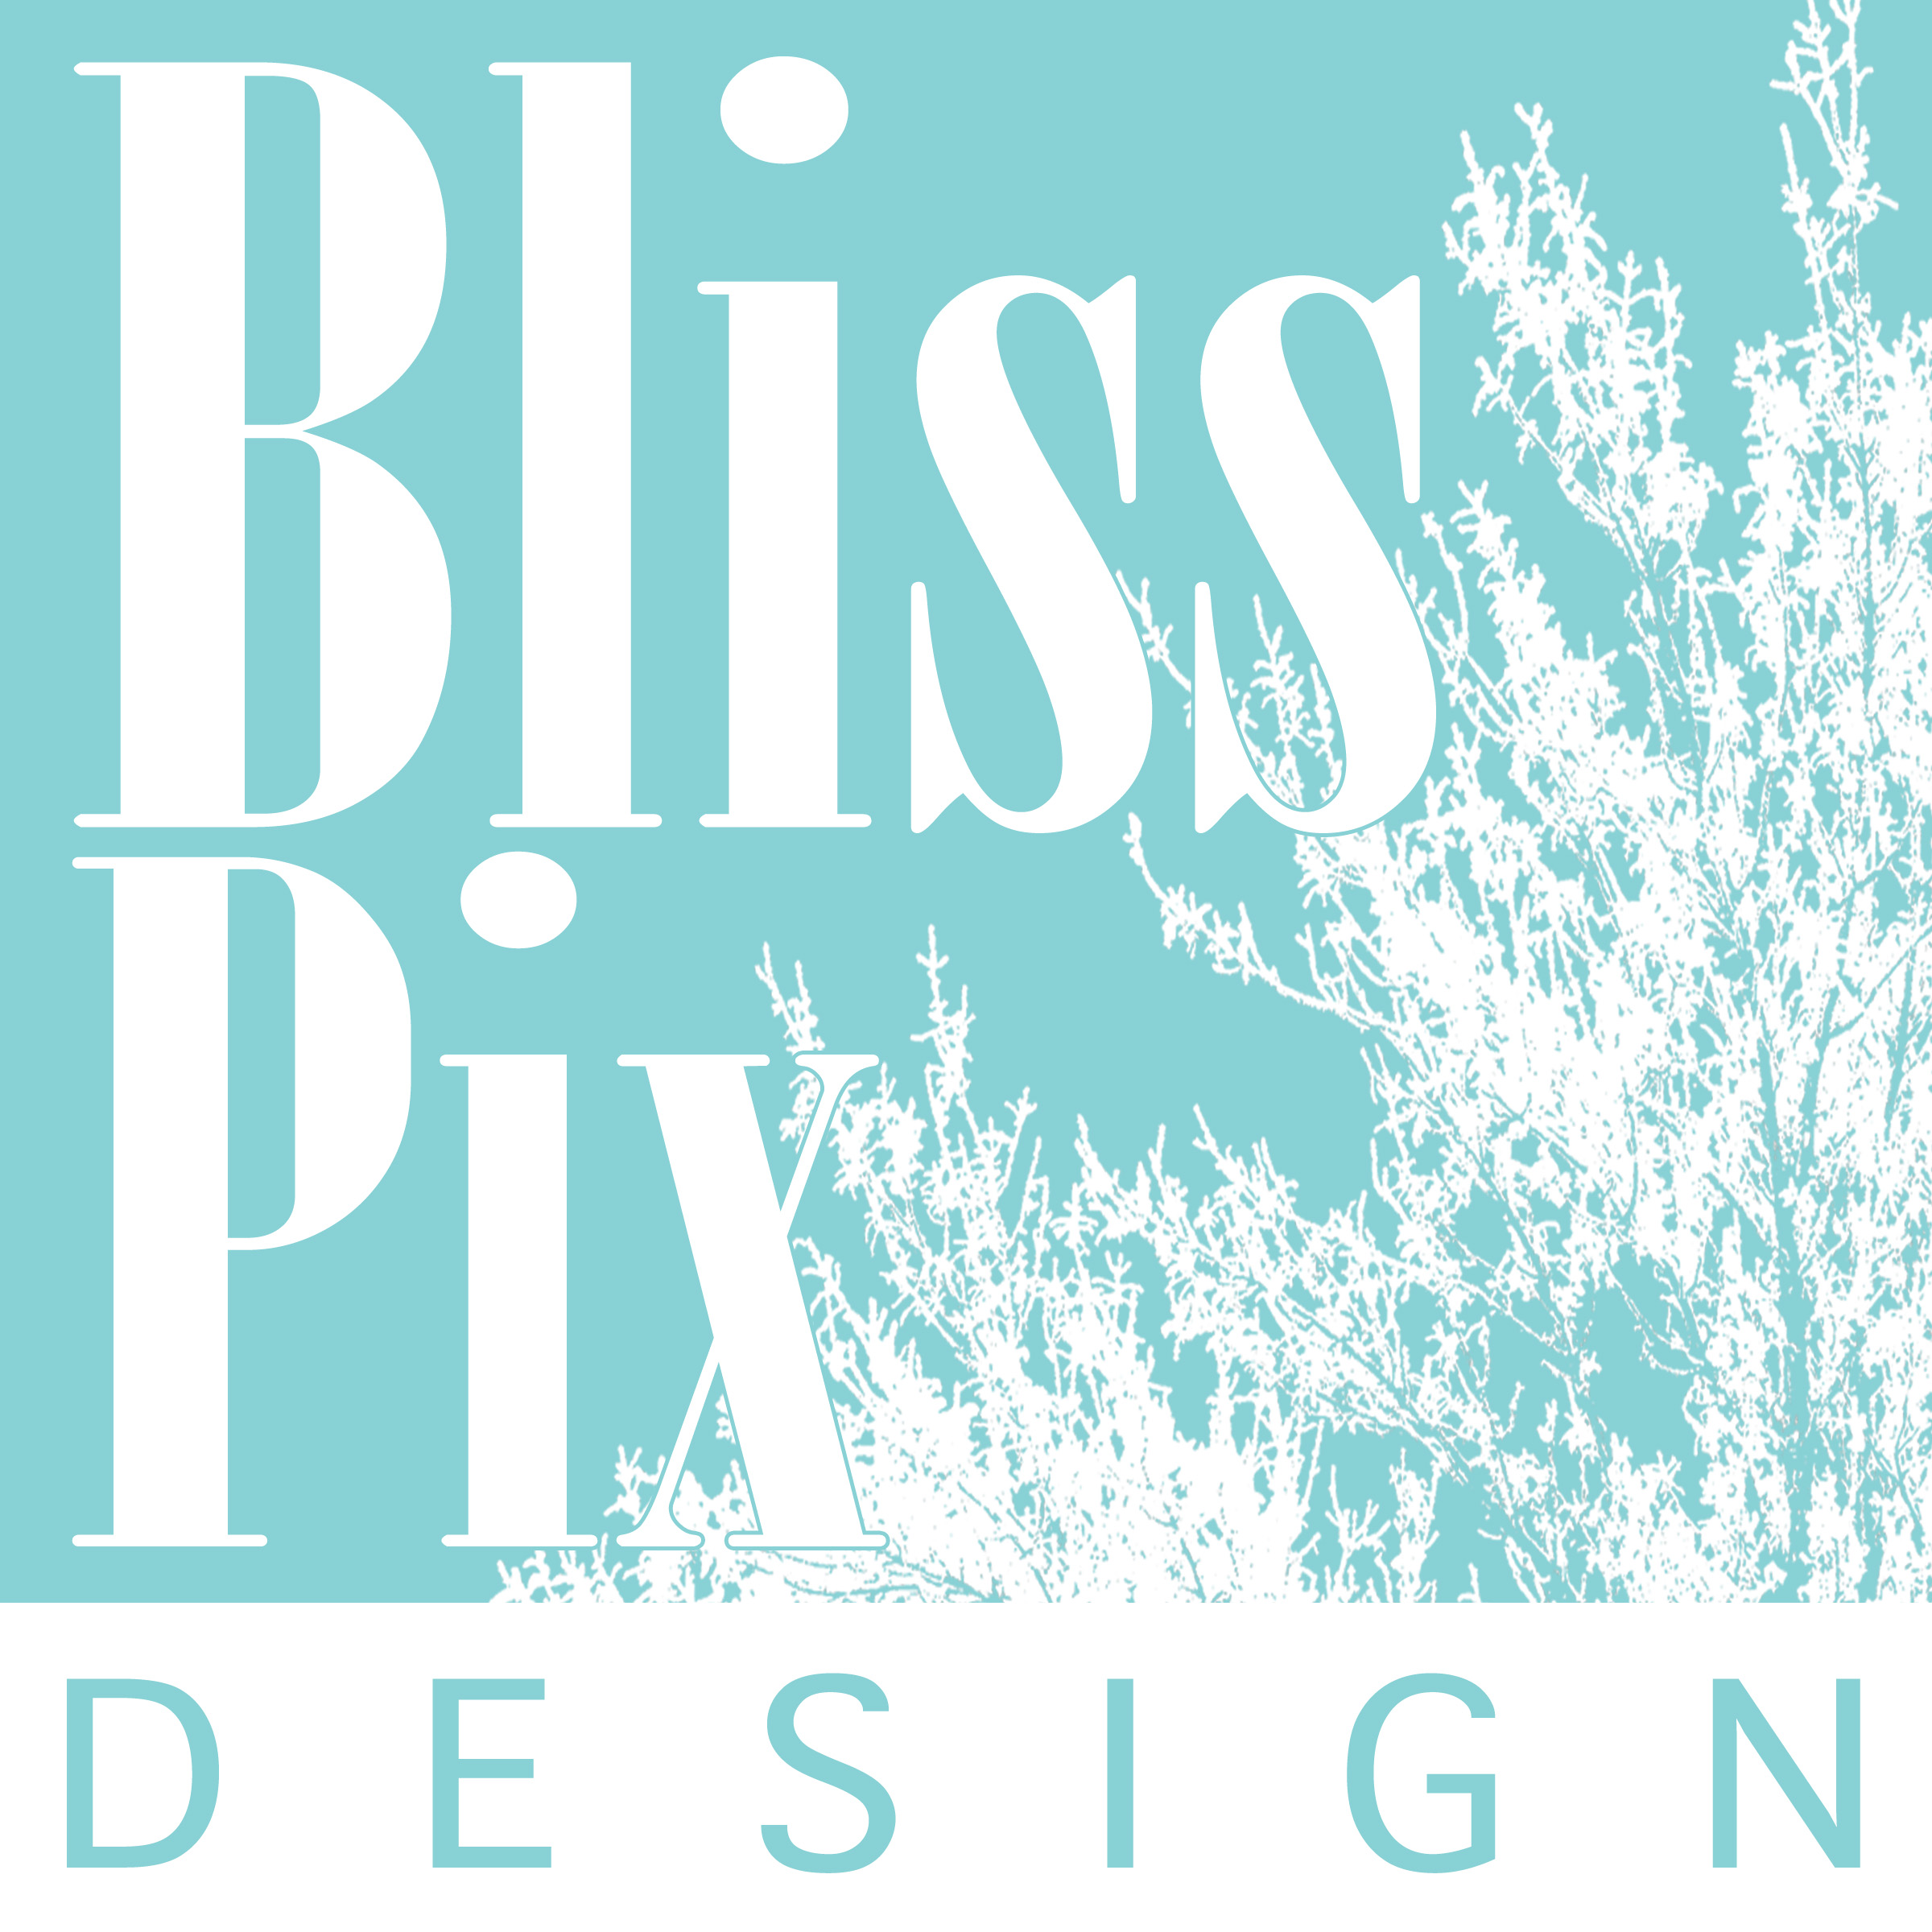 blisspixdesign.com